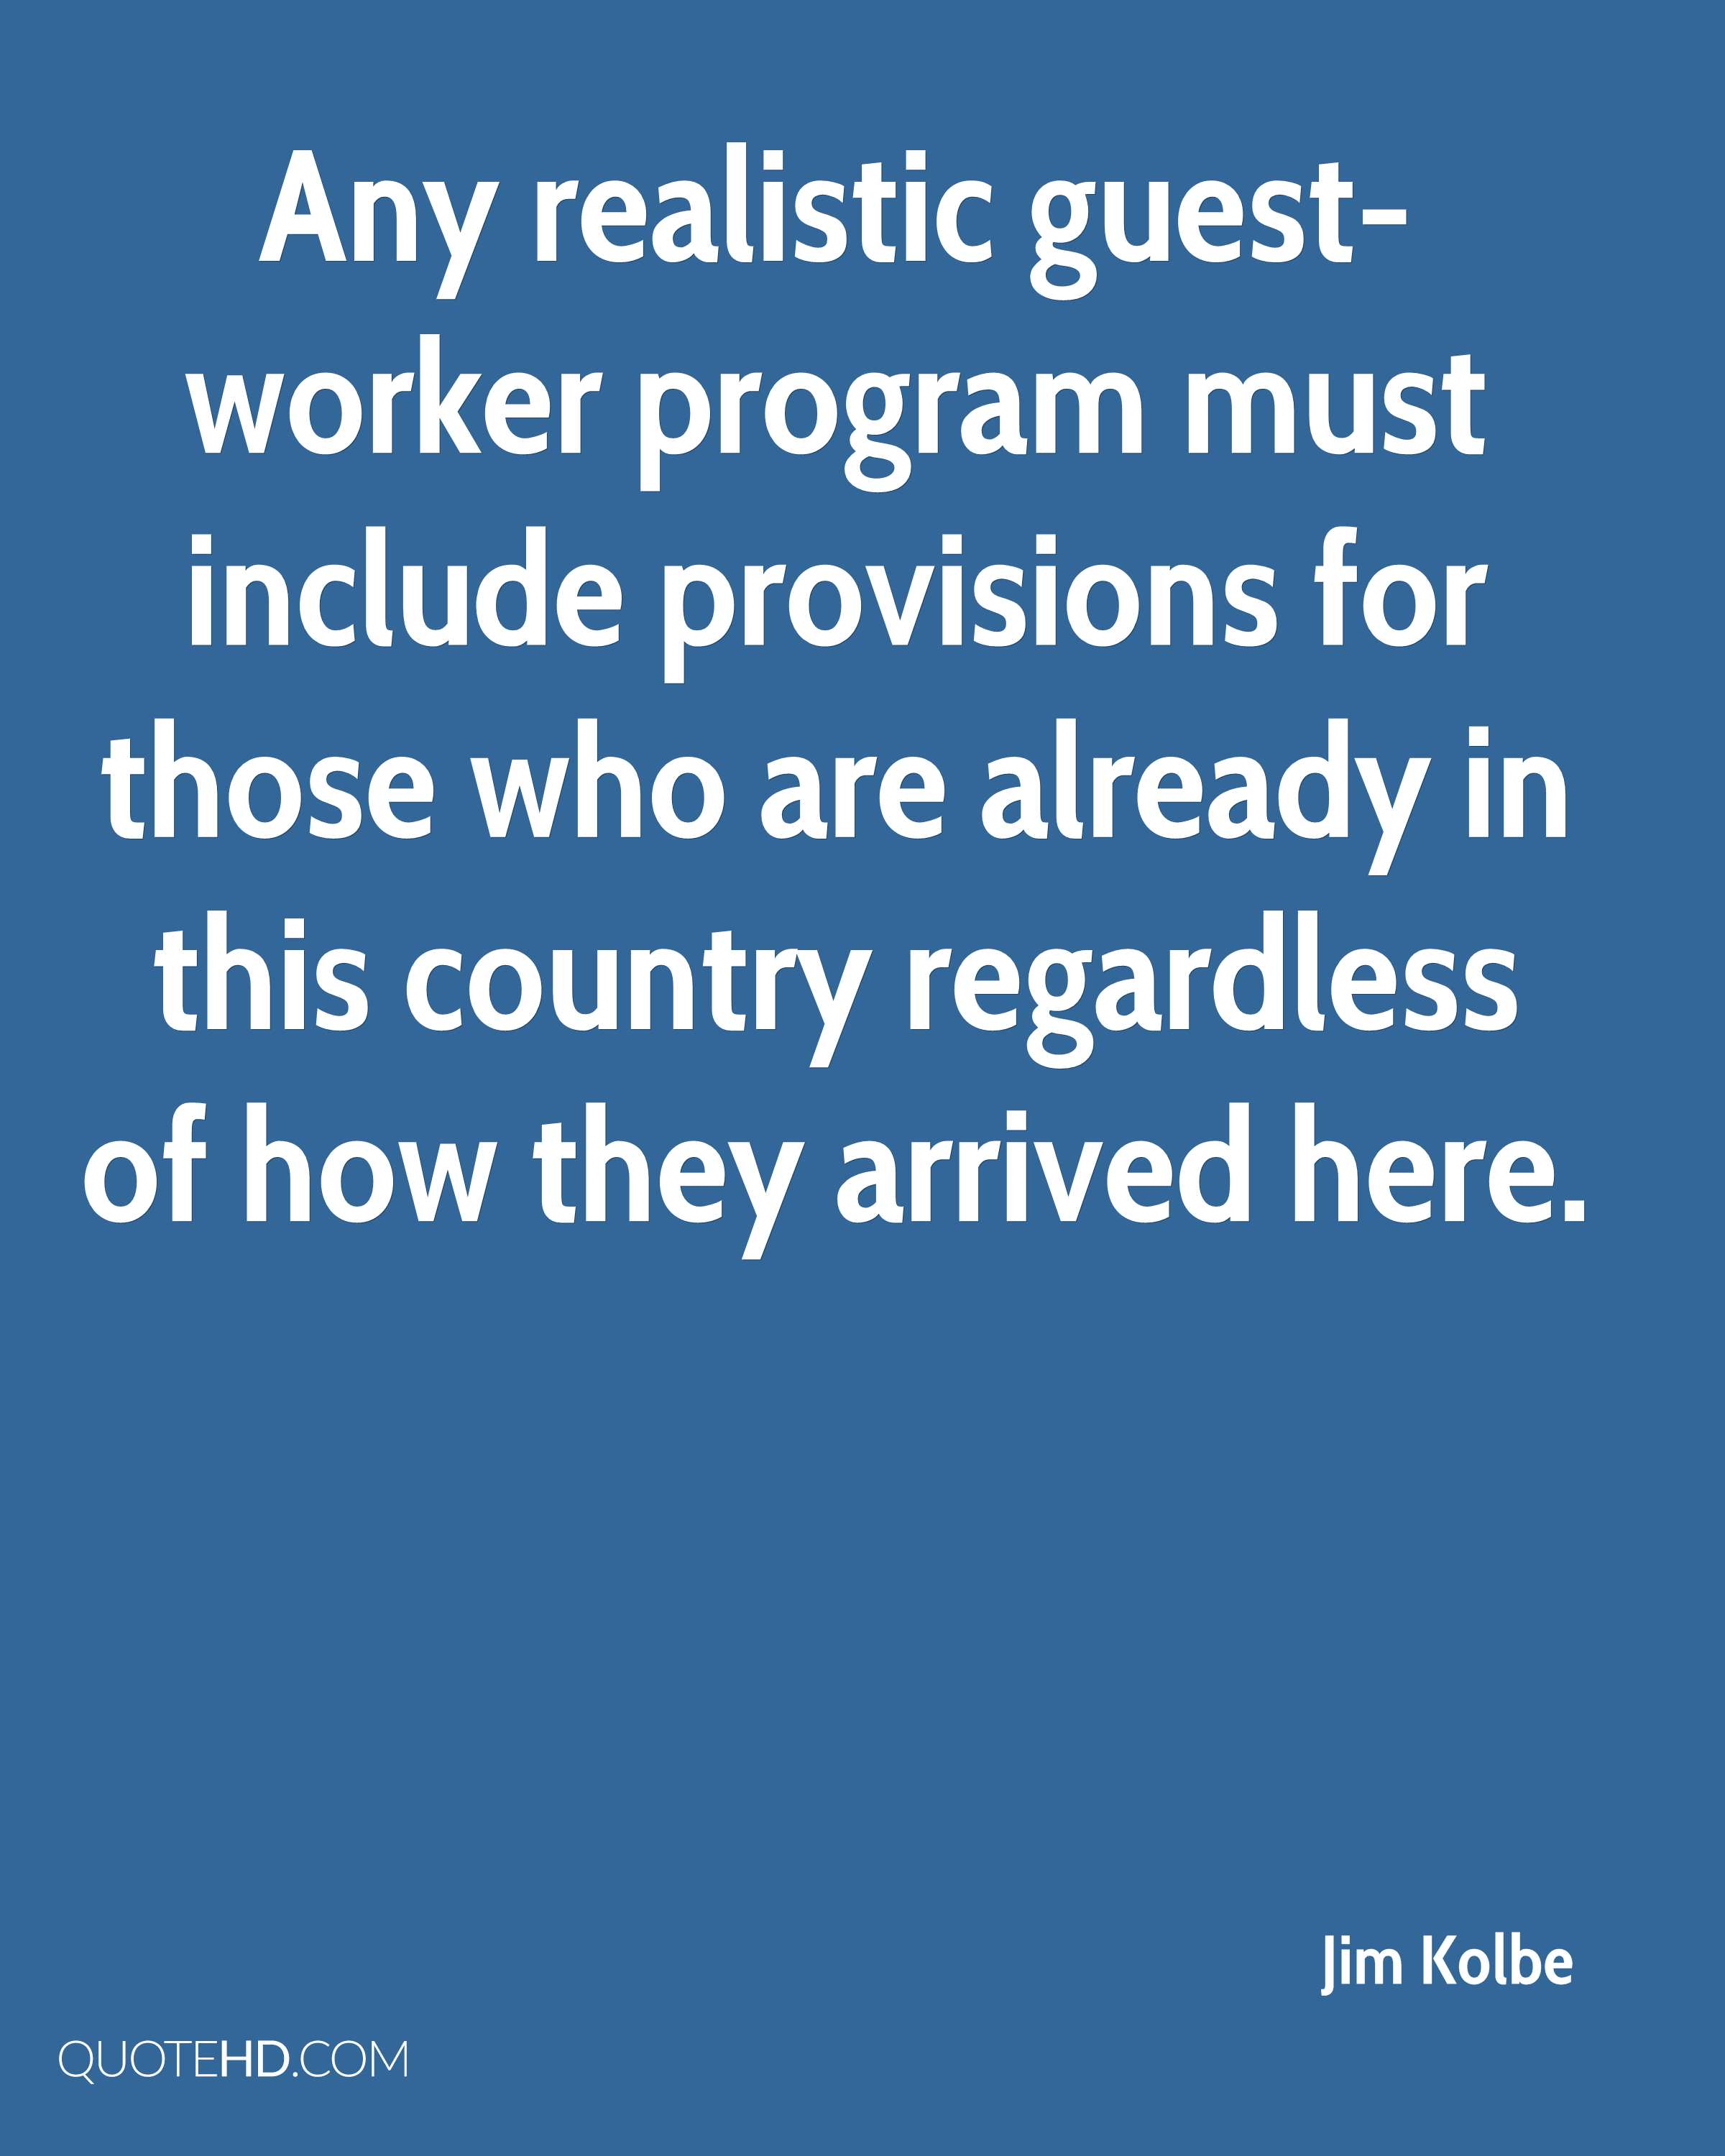 Any realistic guest-worker program must include provisions for those who are already in this country regardless of how they arrived here.